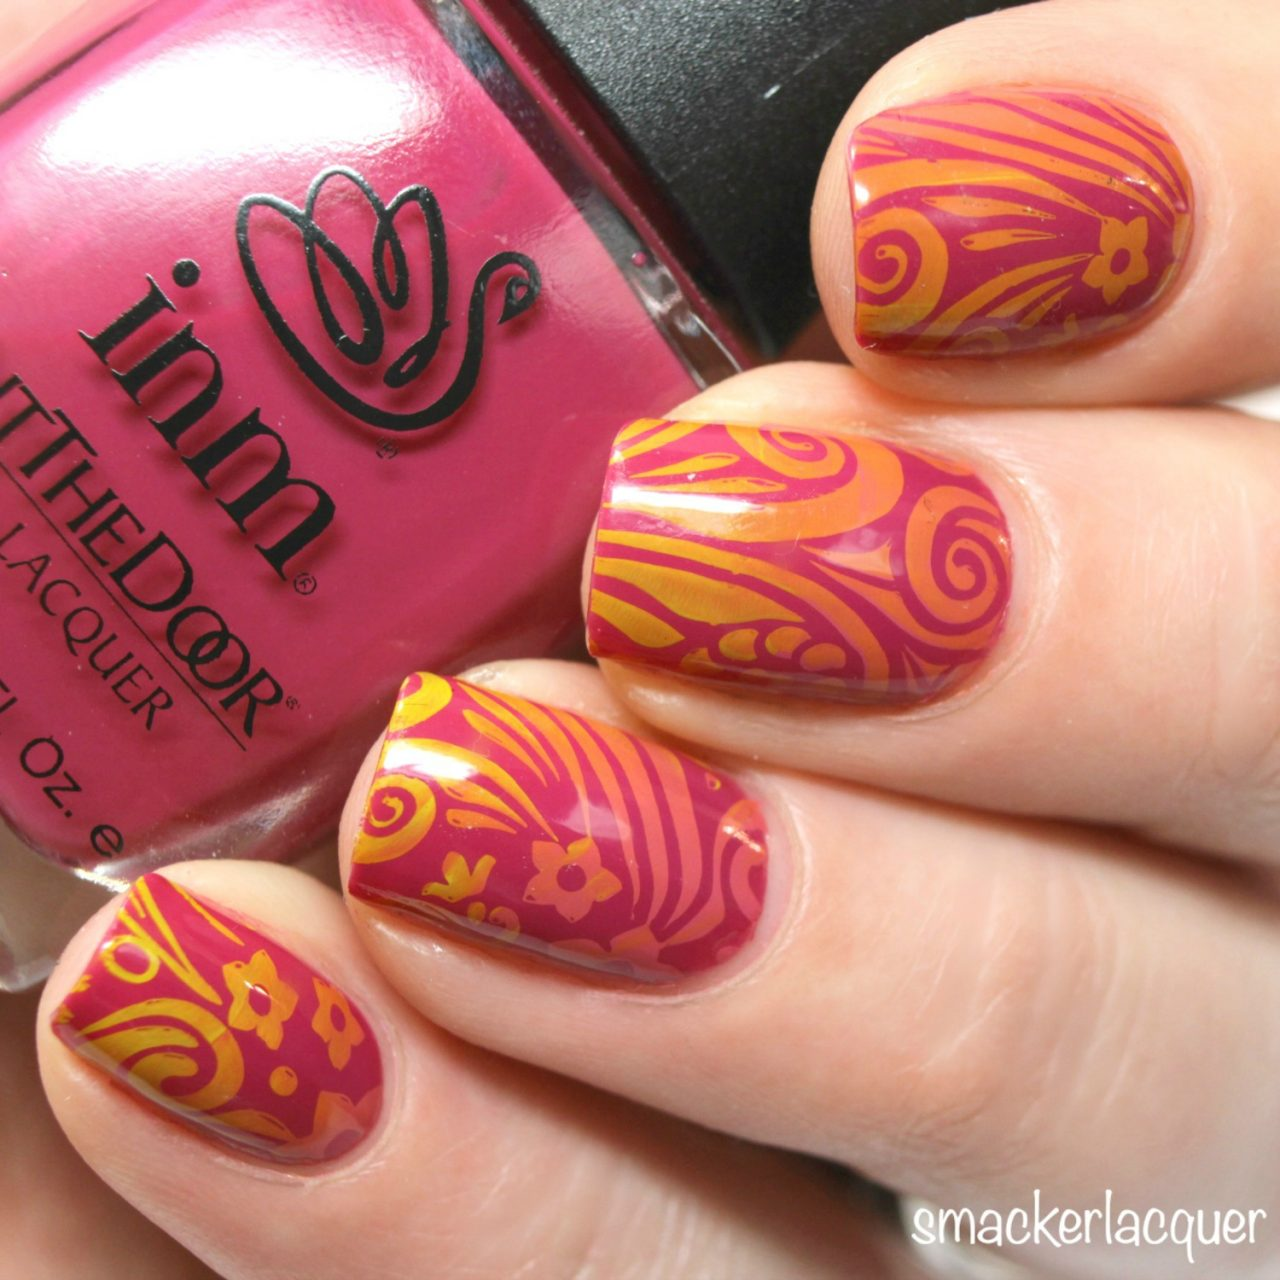 Guest Post – Smackerlacquer | Monismani